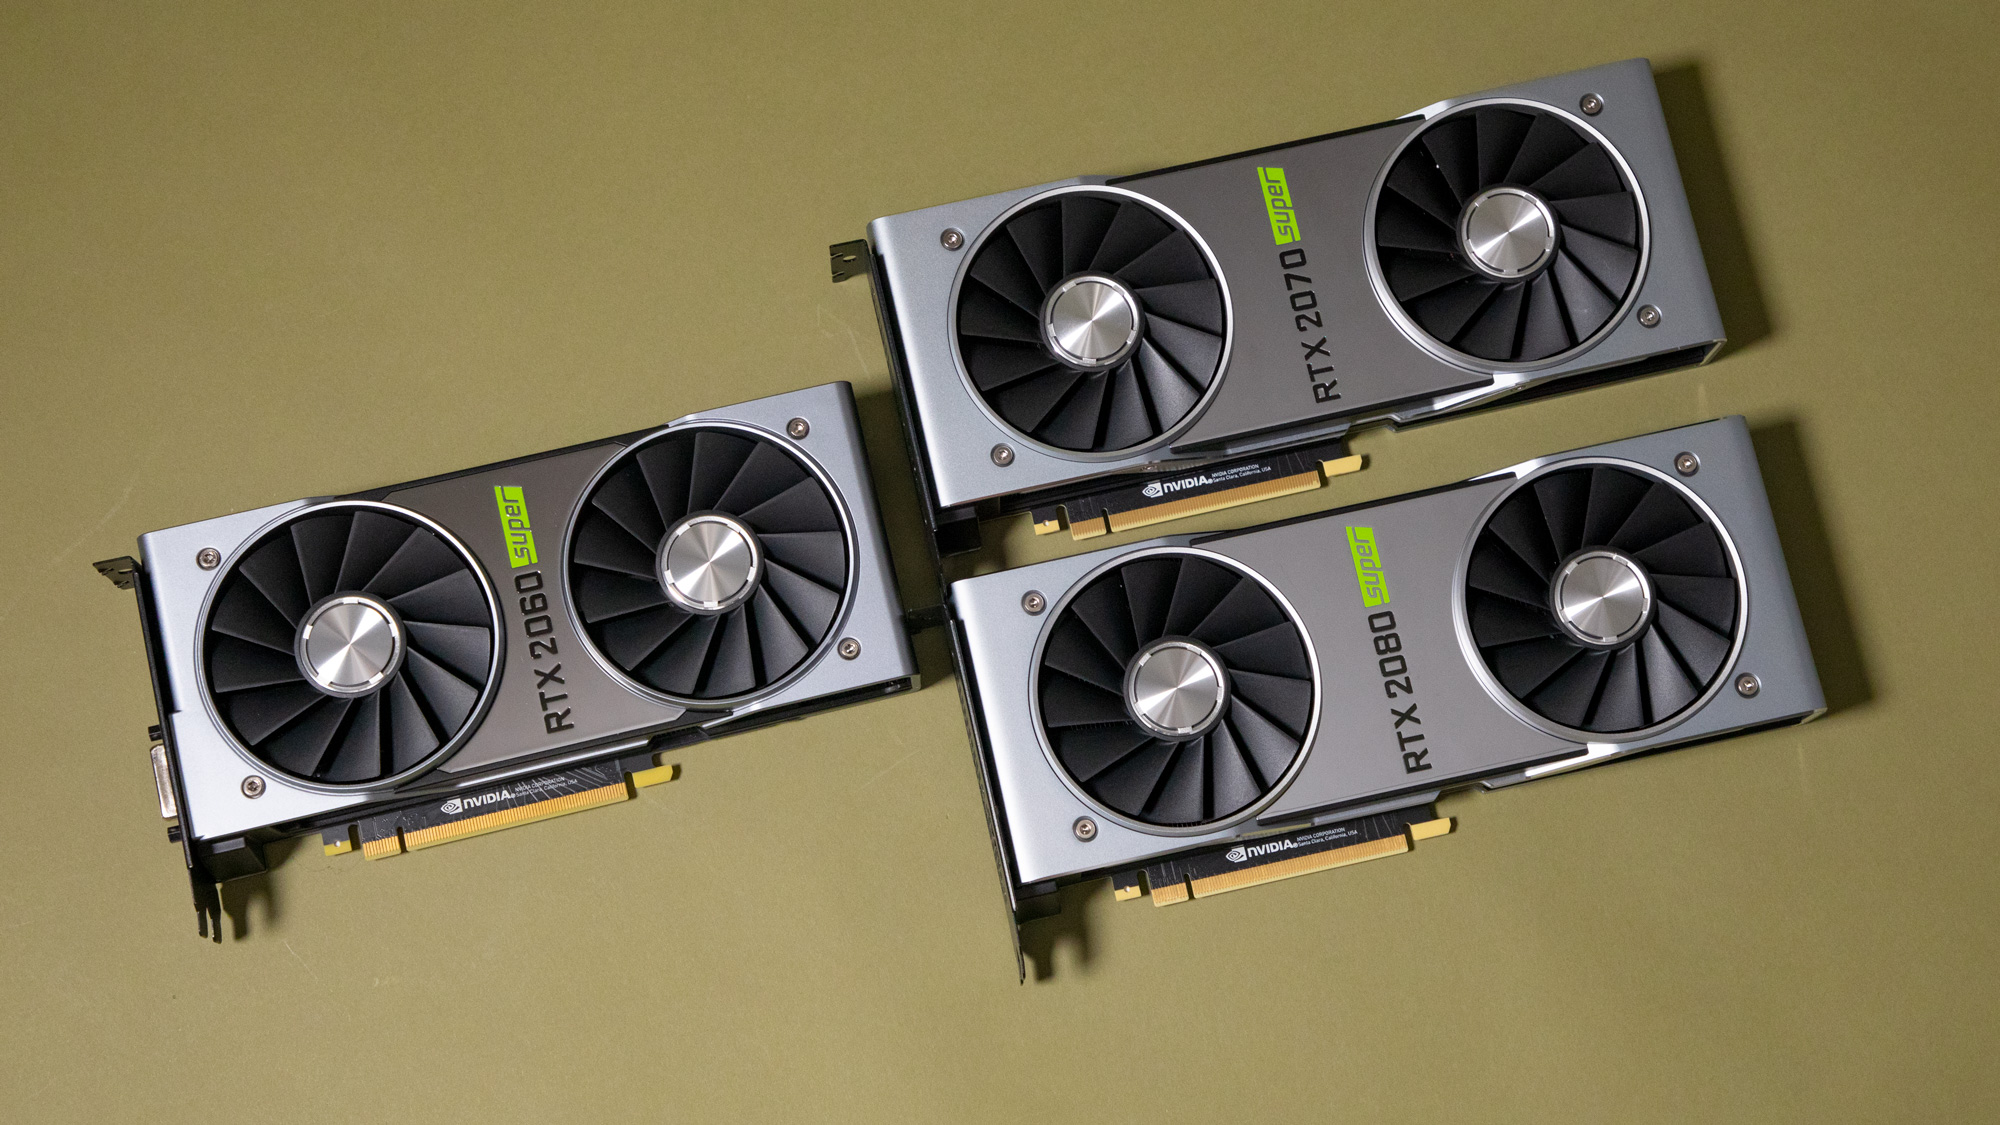 3N3Q4sS5JEsbSeqNjCPw9g - Nvidia GeForce RTX 2080 Super vs RTX 2080: what has changed?